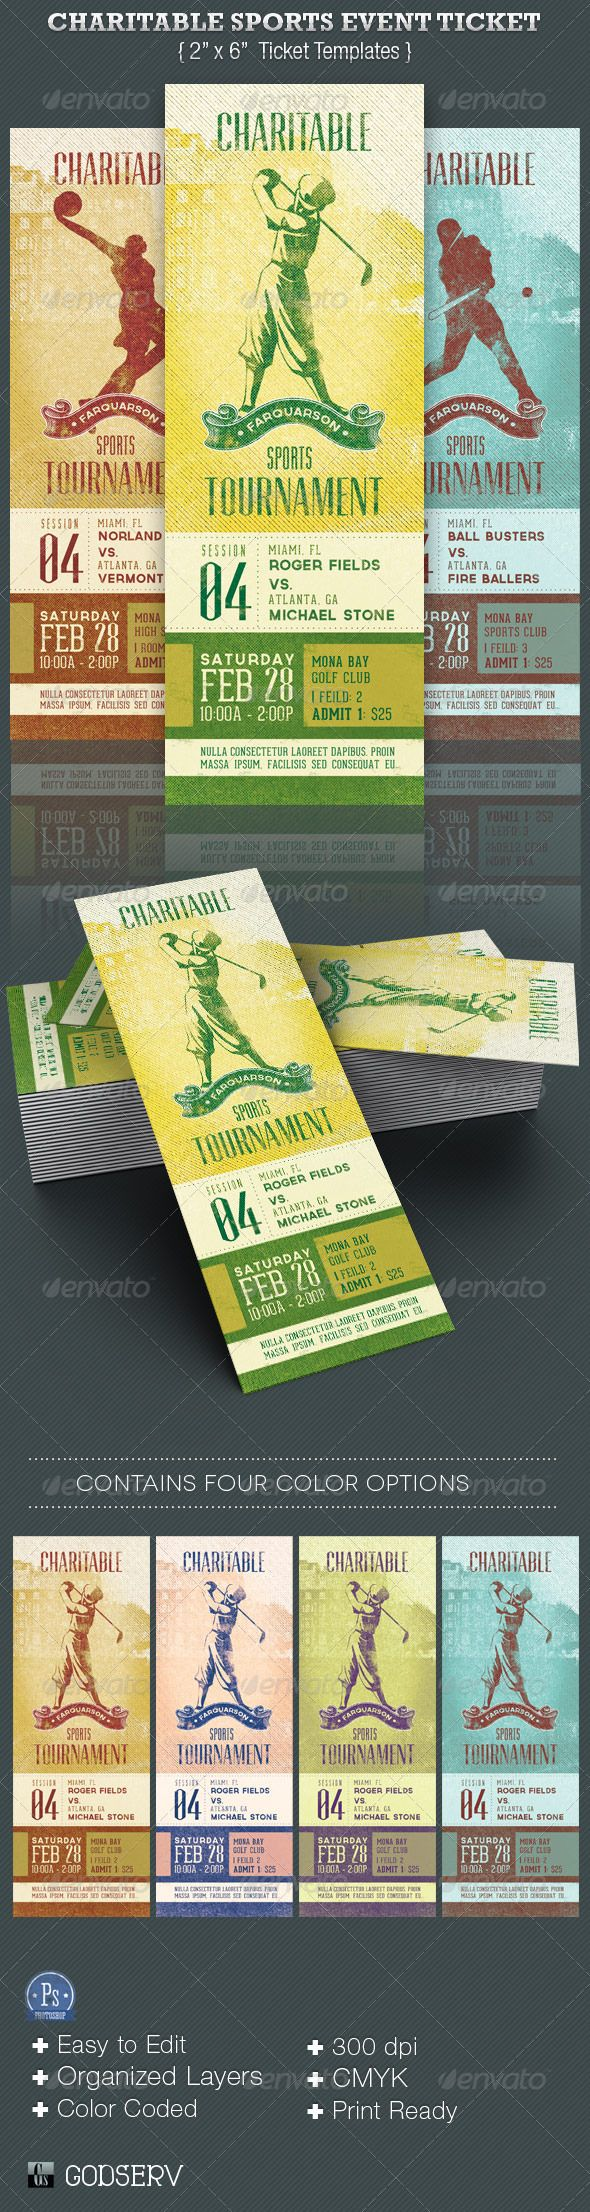 Charitable Sports Event Ticket Template | Ticket template, Event ...